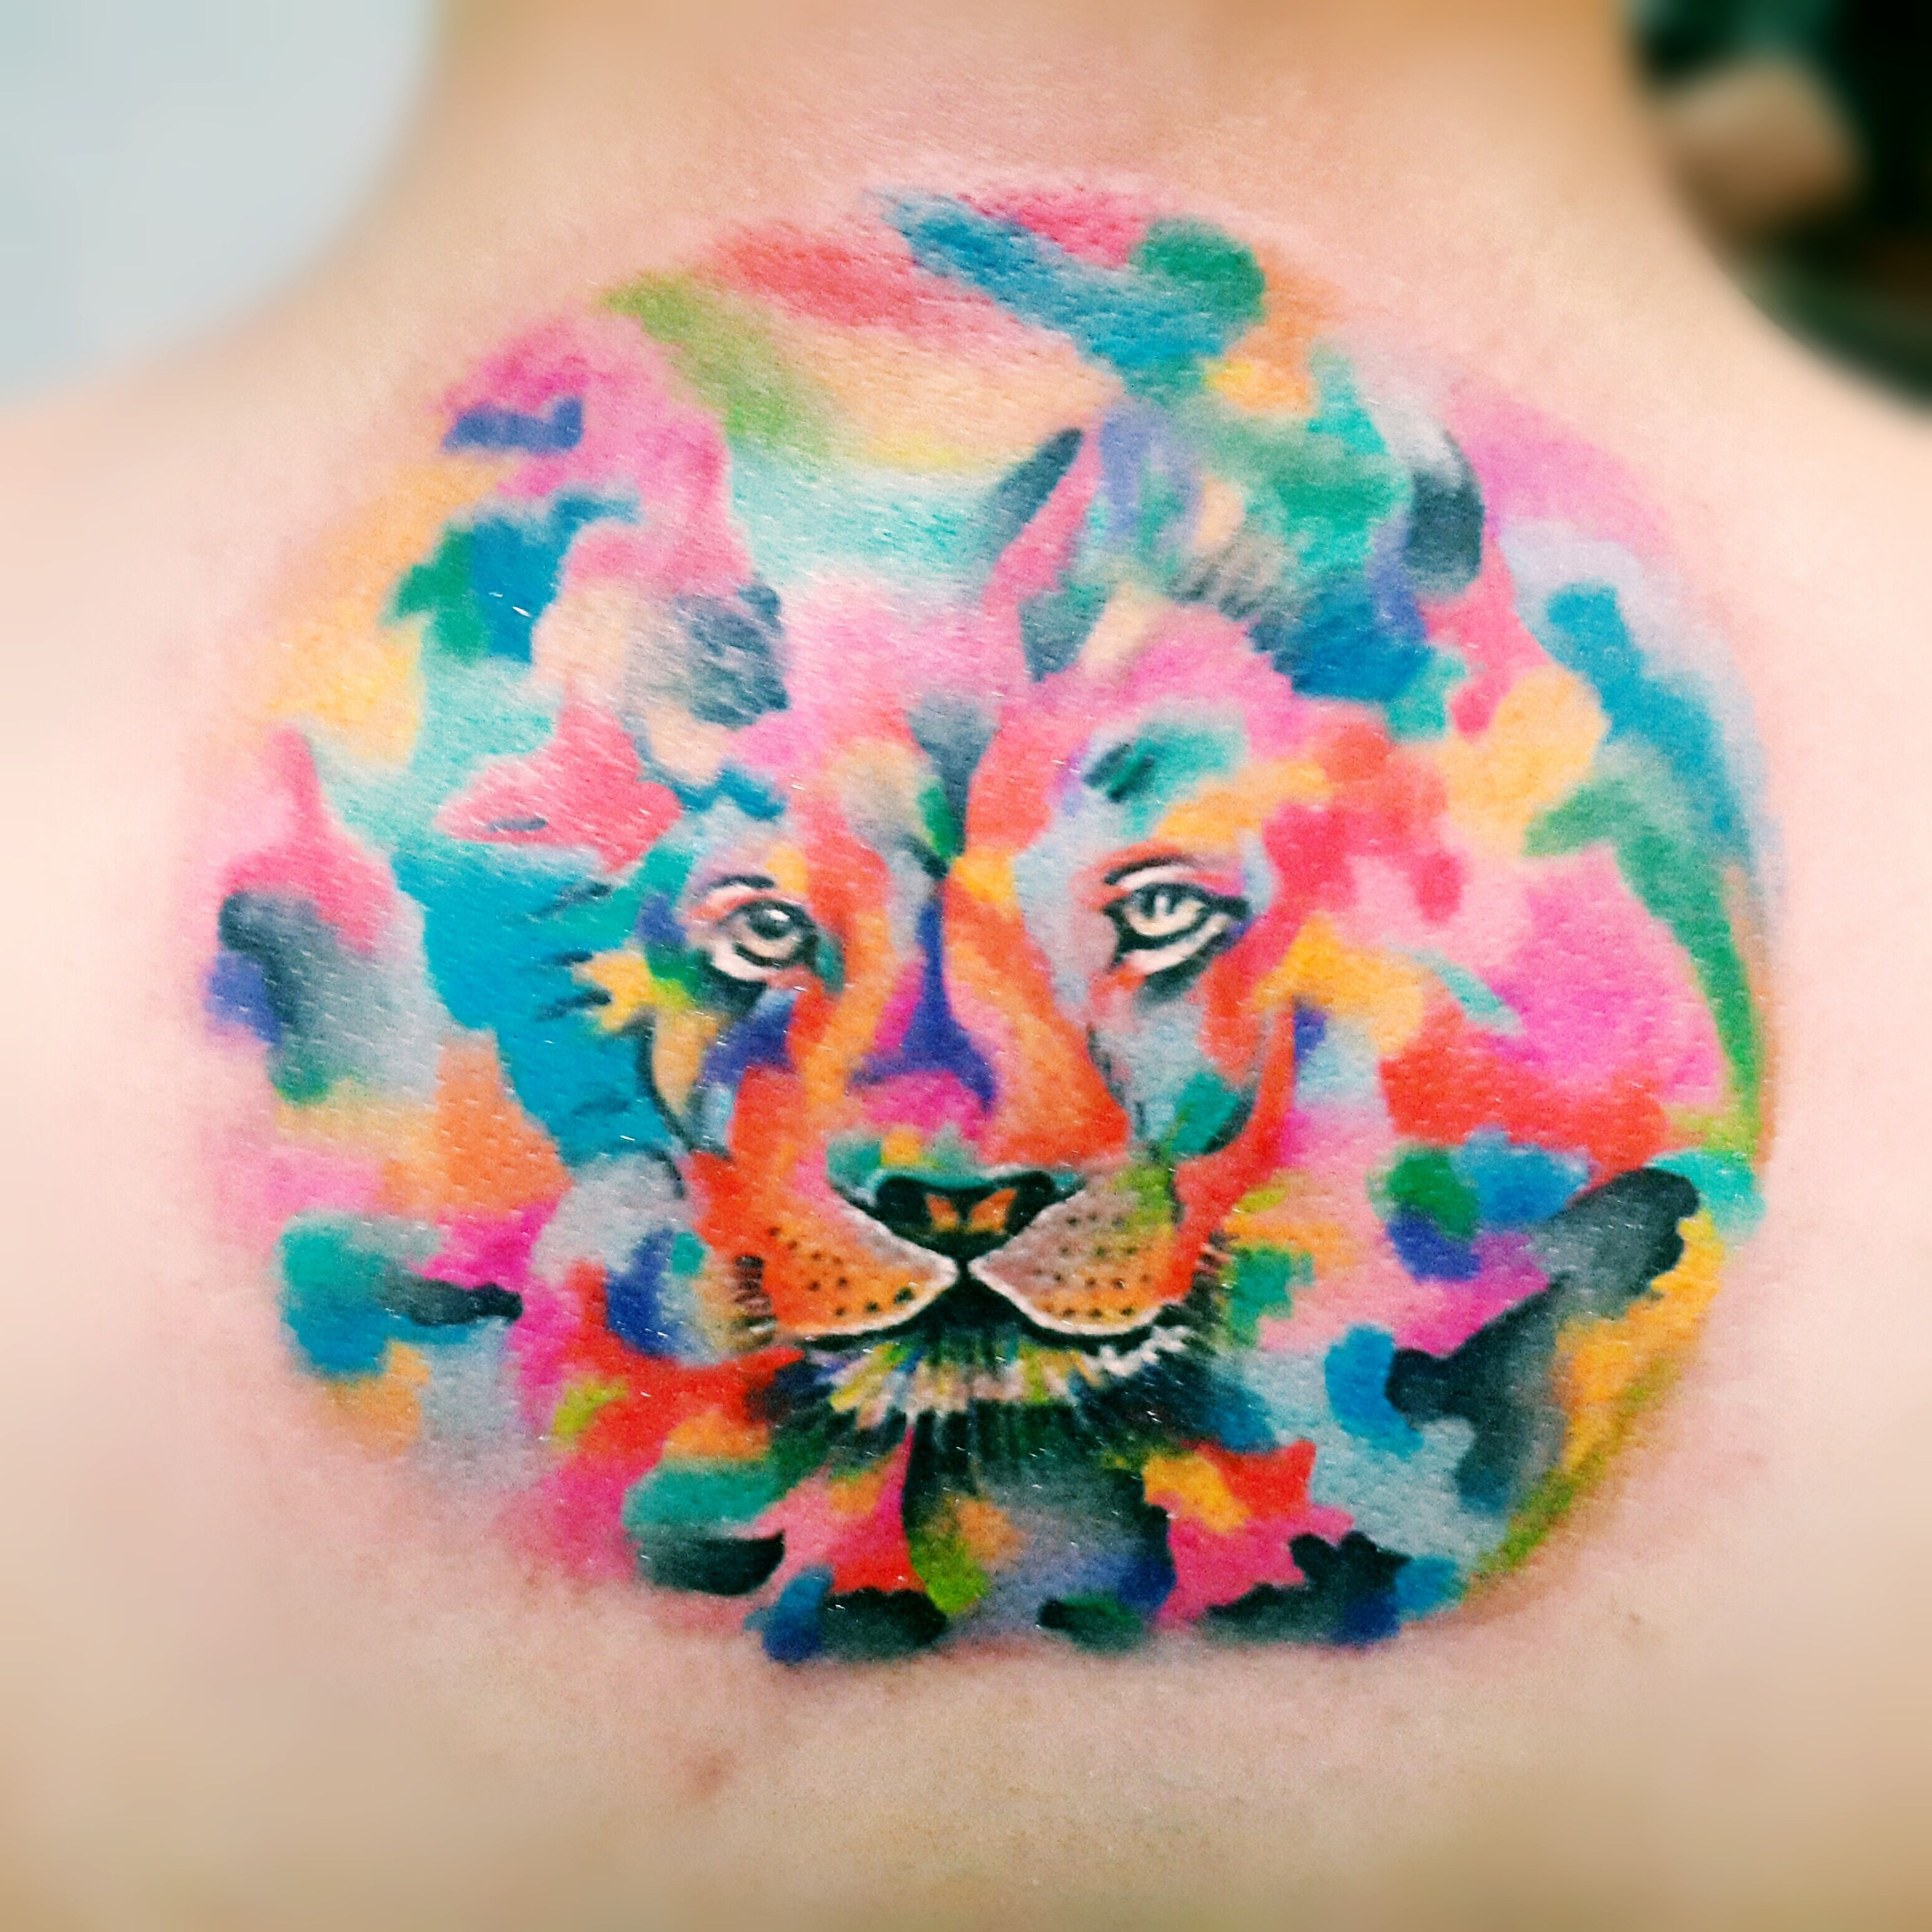 My trippy lion watercolor tattoo. Made by uyabtengab from